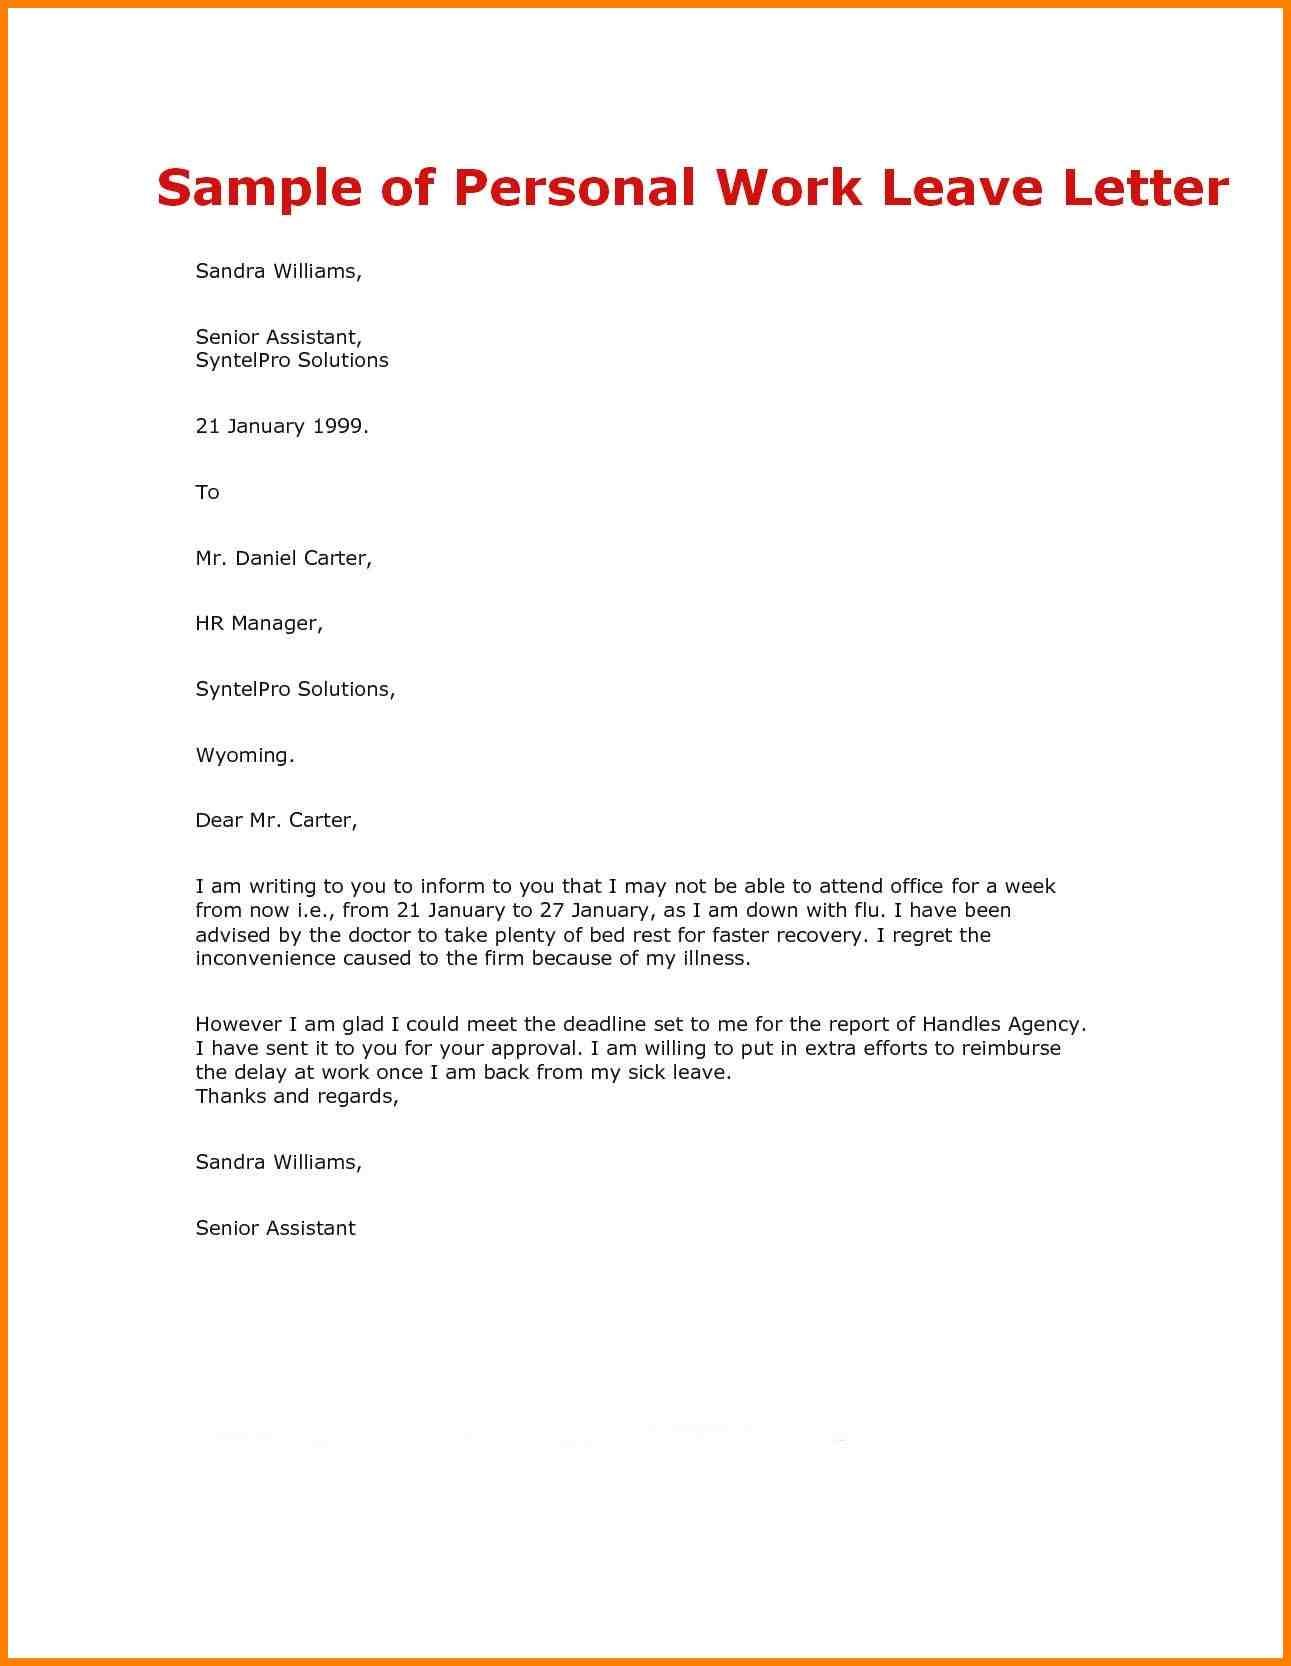 Charity support letter template sample free letters asking for charity support letter template sample free letters asking for donations word doc download spiritdancerdesigns Image collections